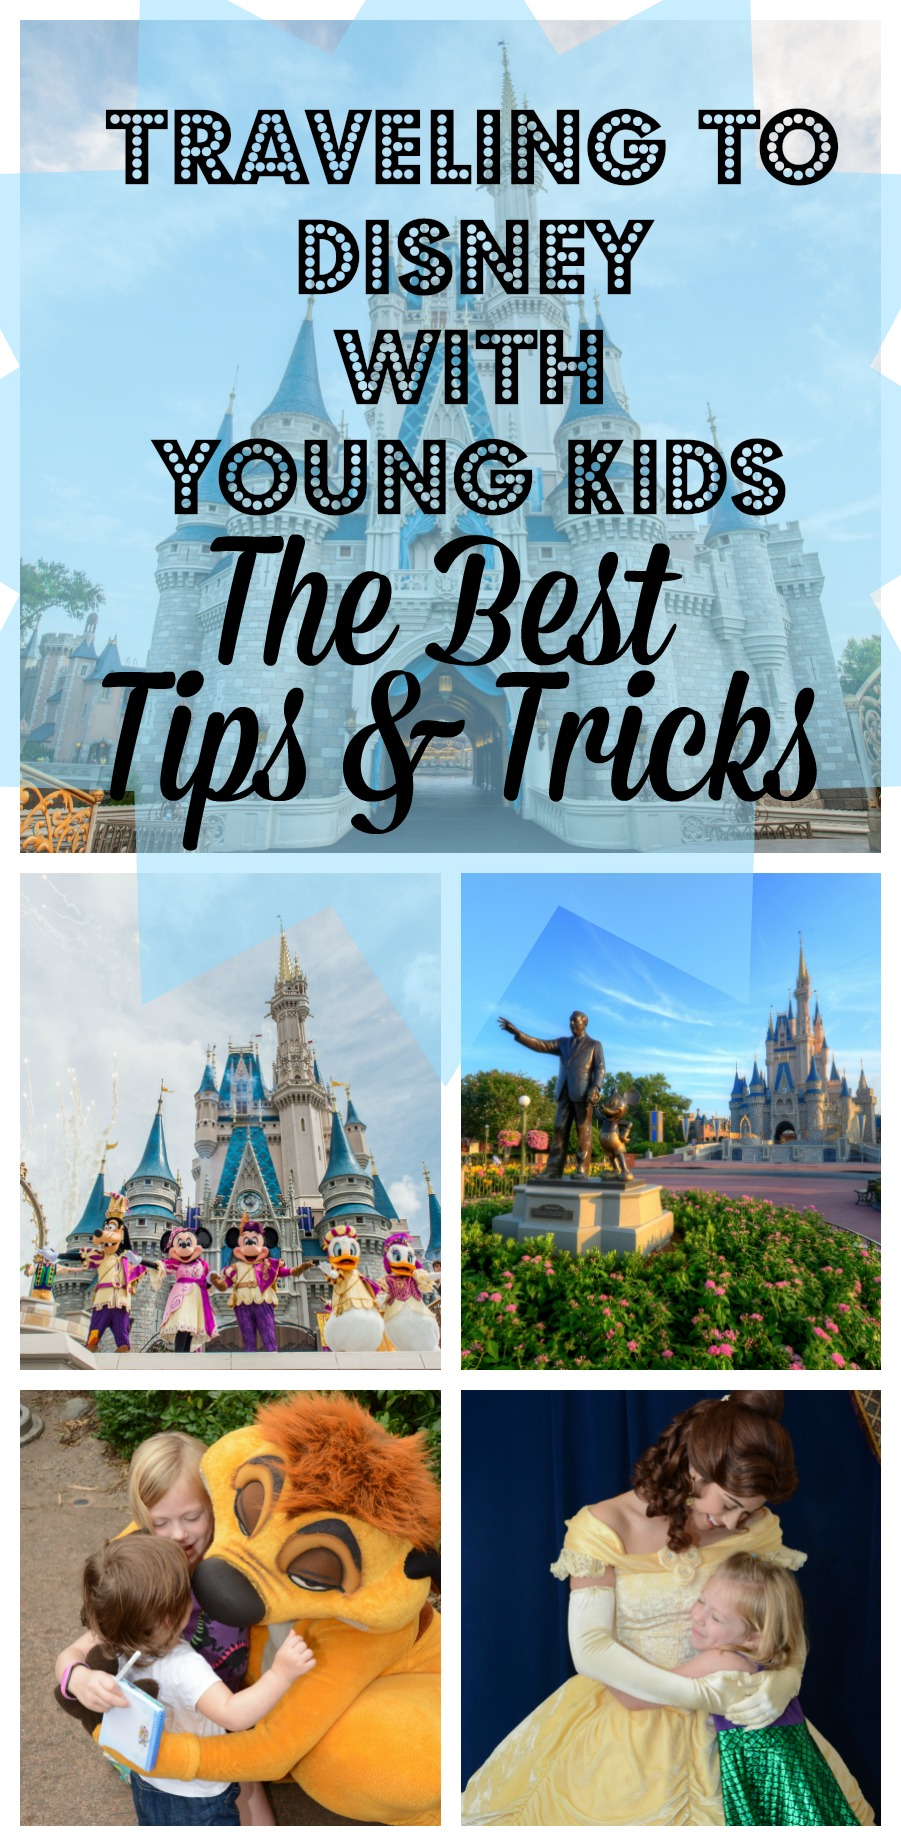 How to Travel to Disney with Young Kids, including toddlers or preschoolers! How to plan the perfect trip to Disney without any stress!